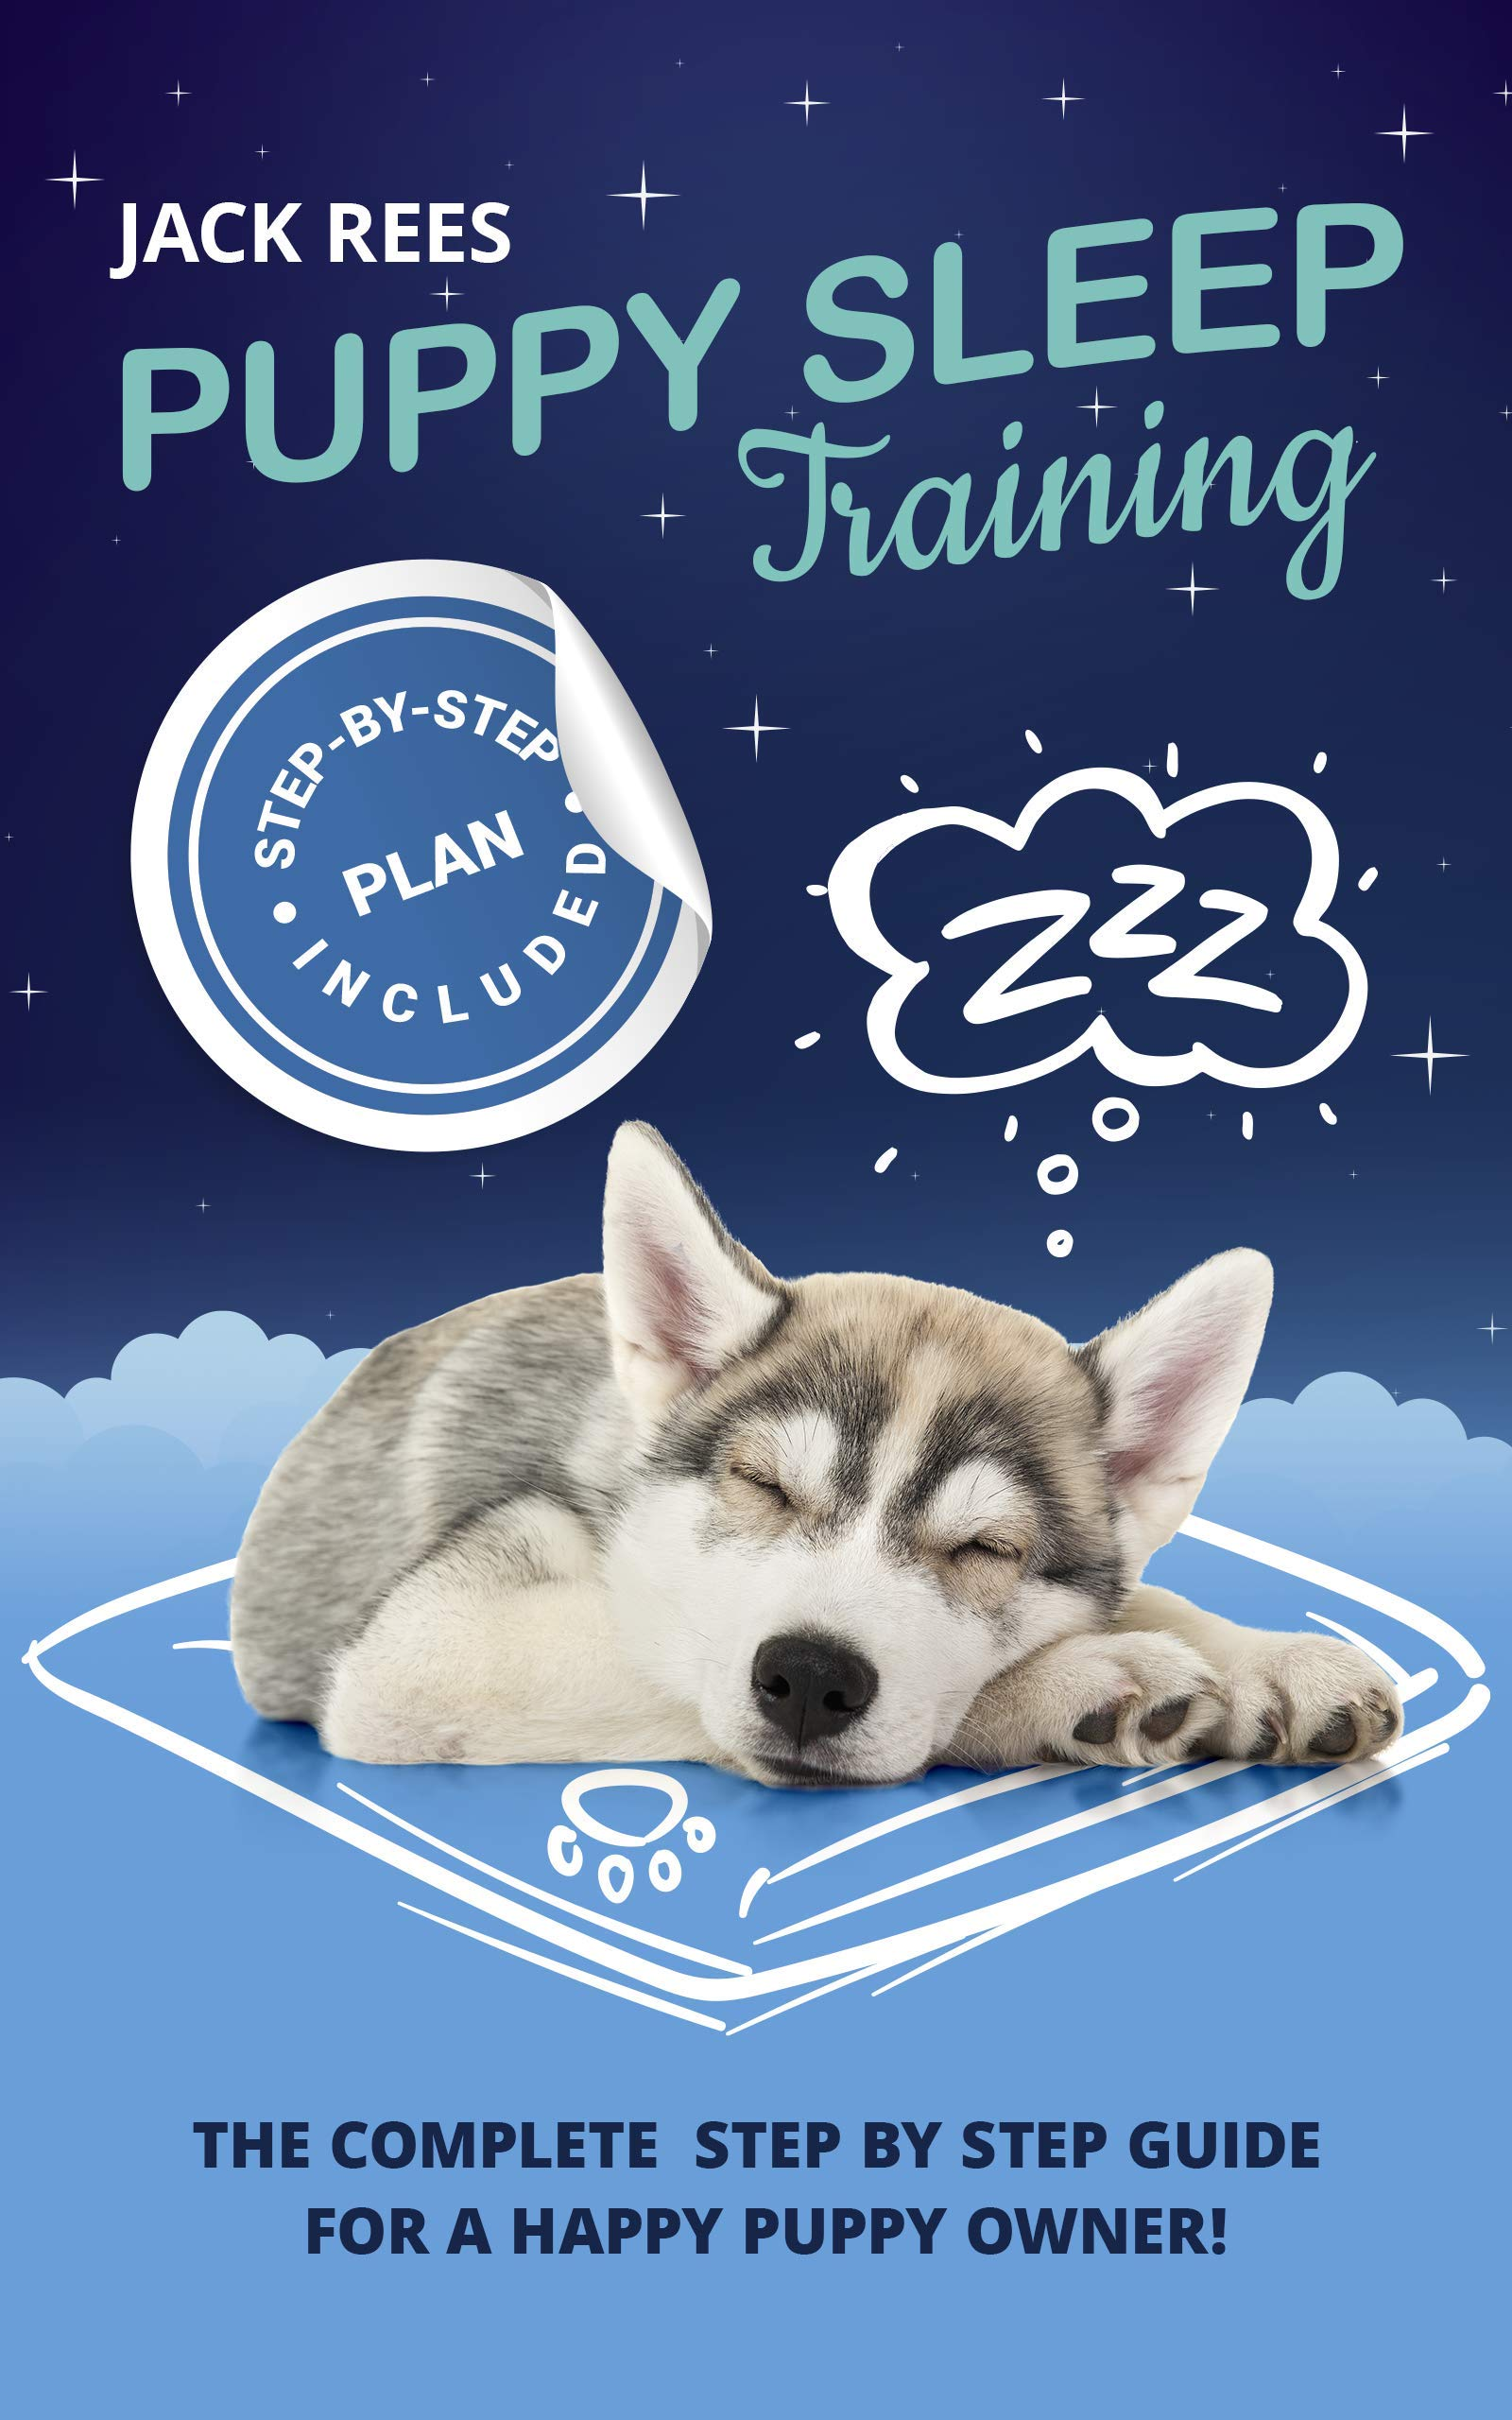 Download PUPPY SLEEP TRAINING: THE COMPLETE STEP BY STEP GUIDE FOR A HAPPY PUPPY OWNER! (POTTY TRAINING, SLEEP TRAINING, OBEDIENCE ... 